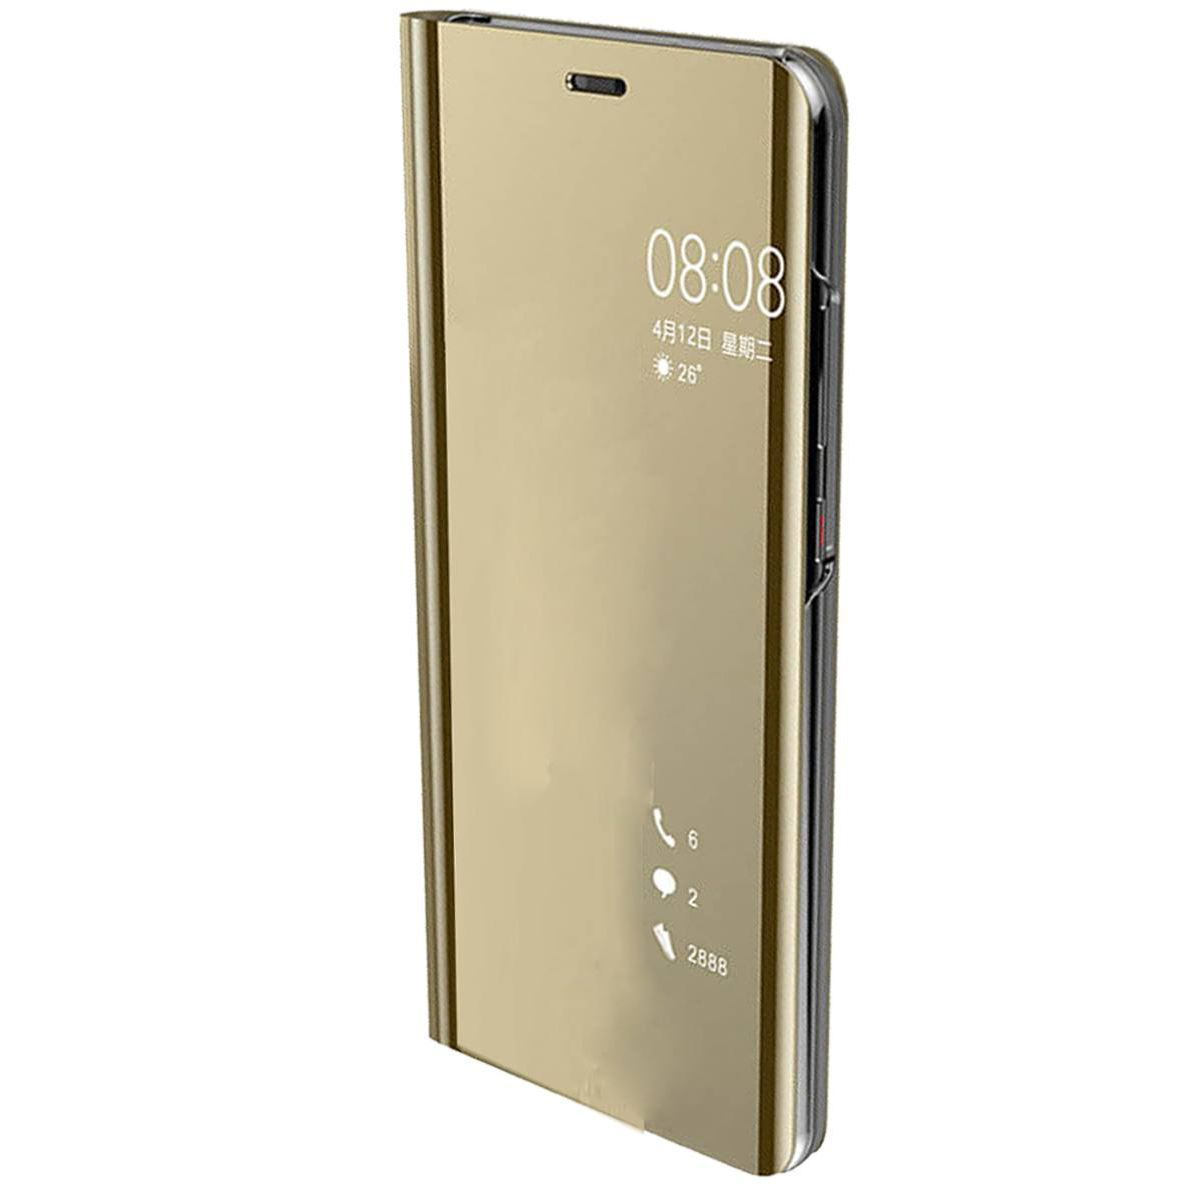 Huawei P20 Case Smart View Mirror Flip Stand Cover - Gold